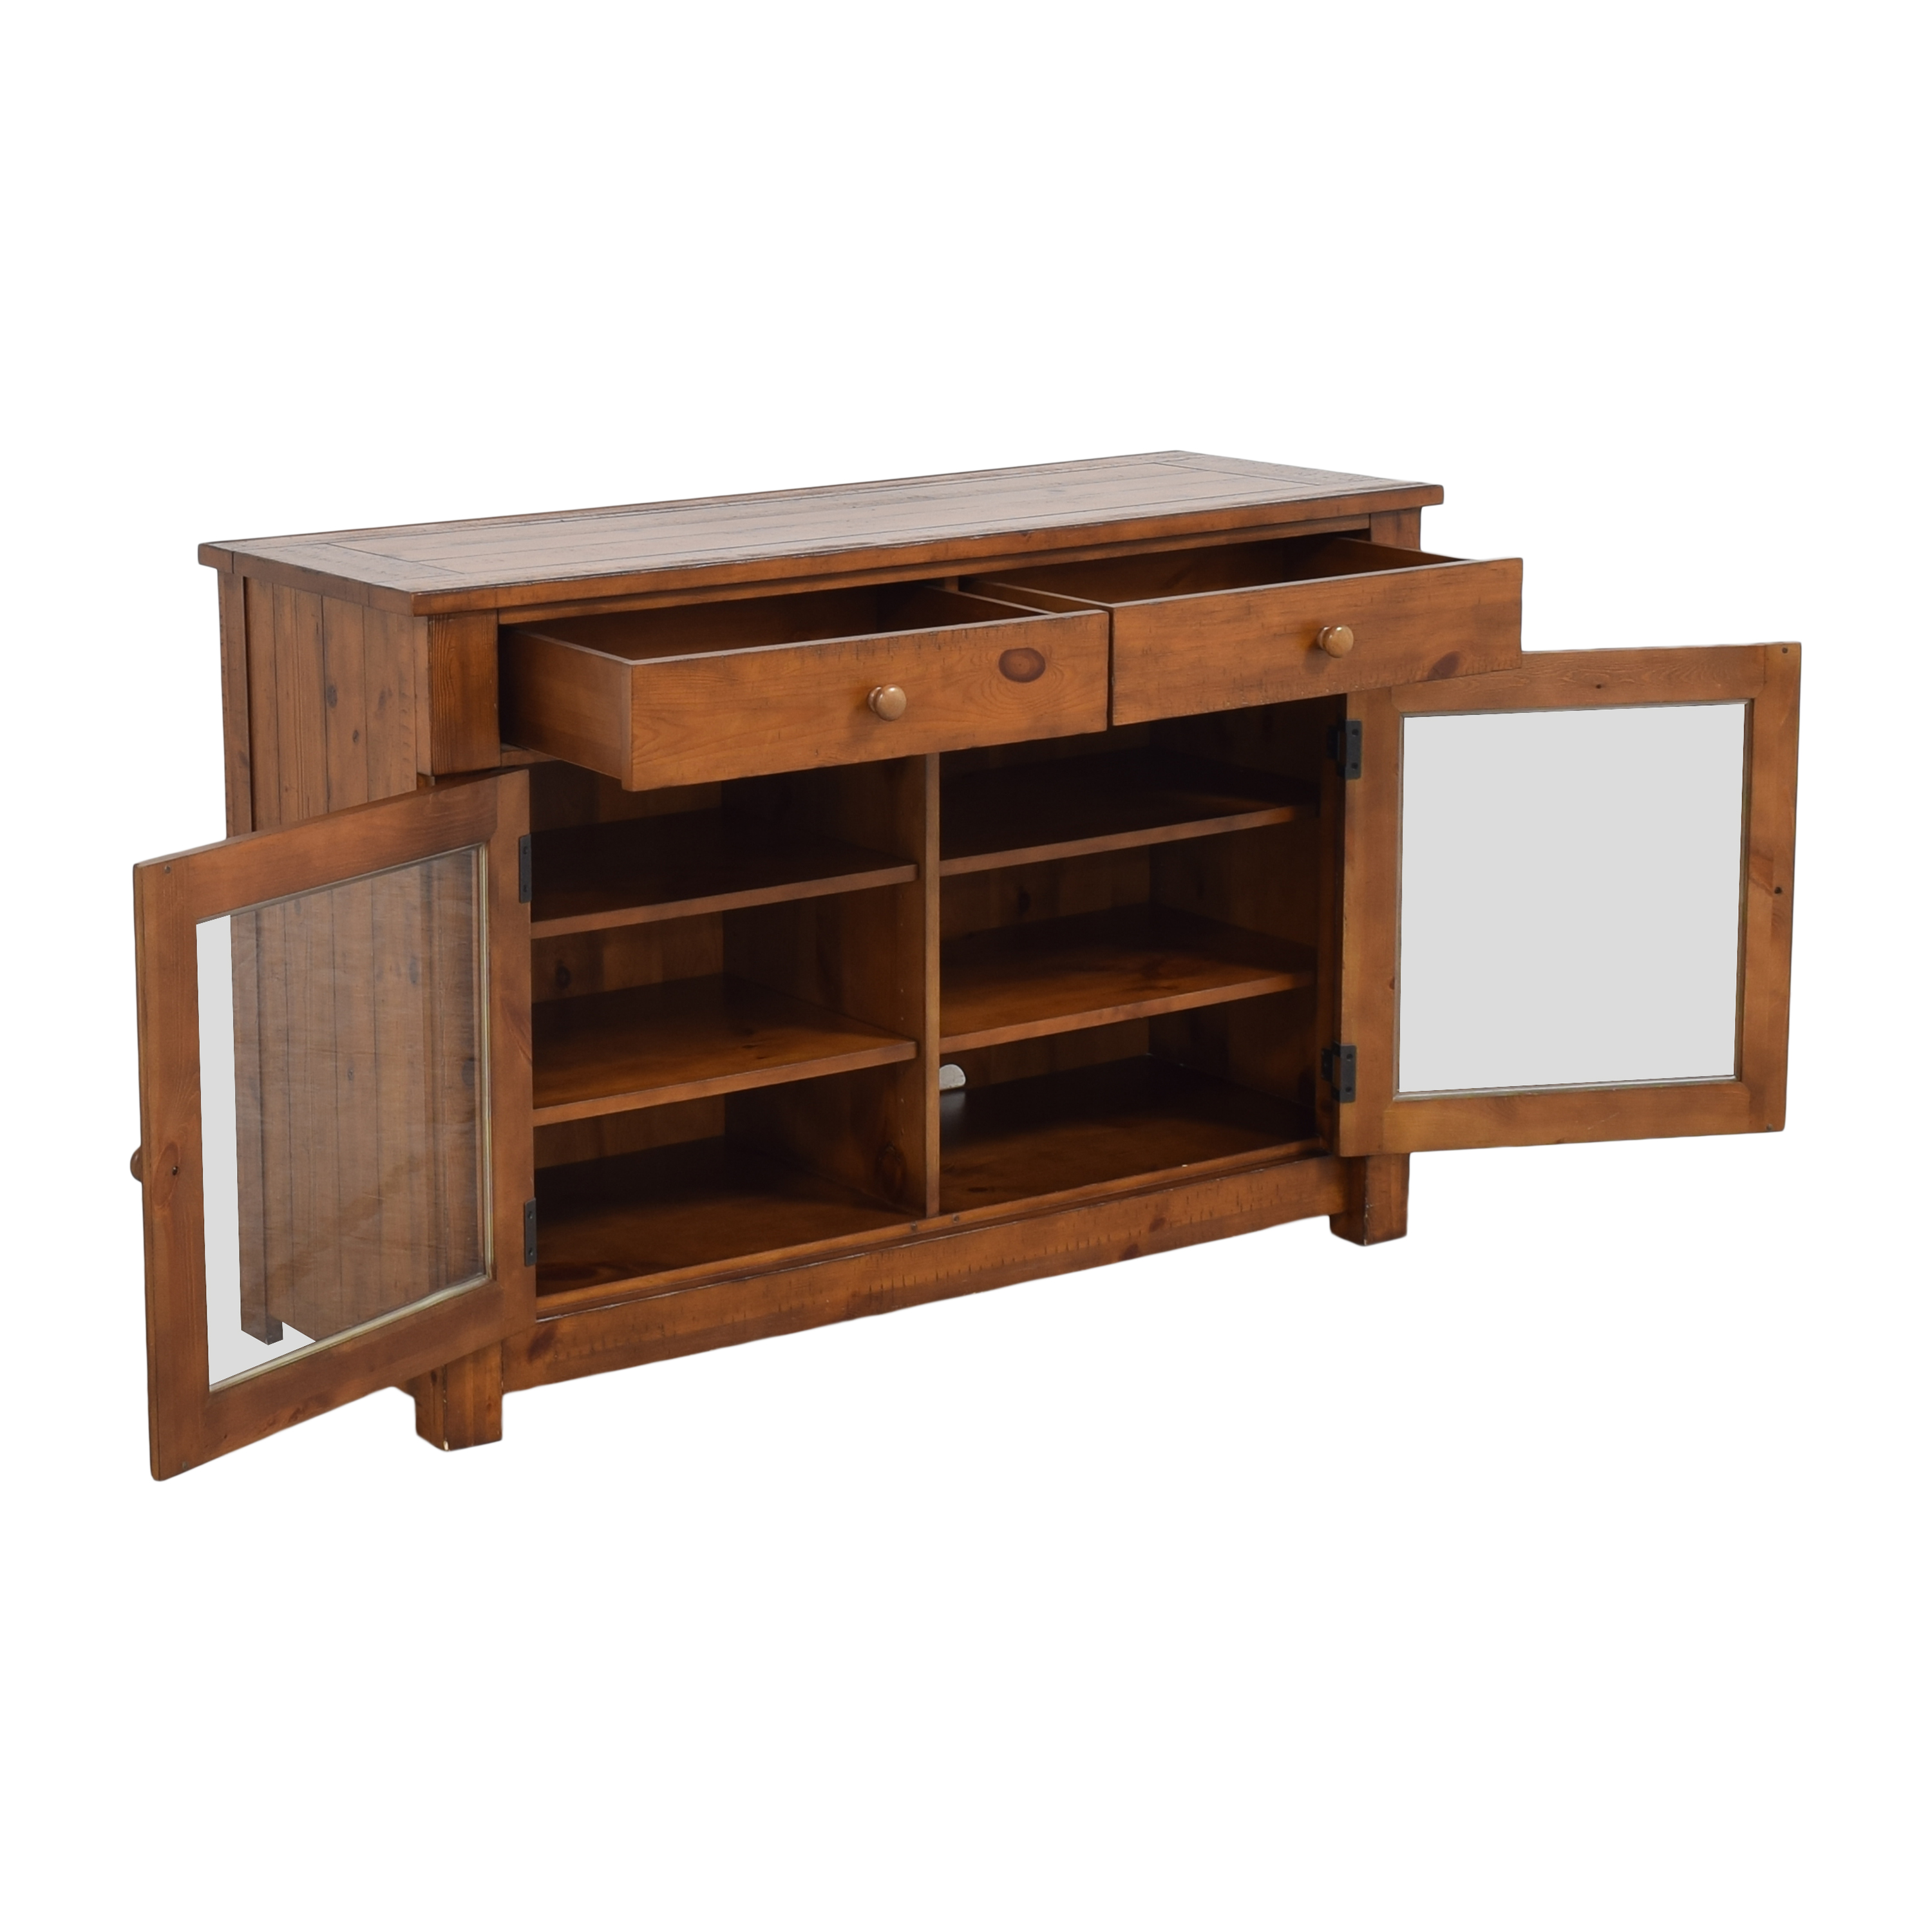 Pottery Barn Pottery Barn Buffet Sideboard second hand